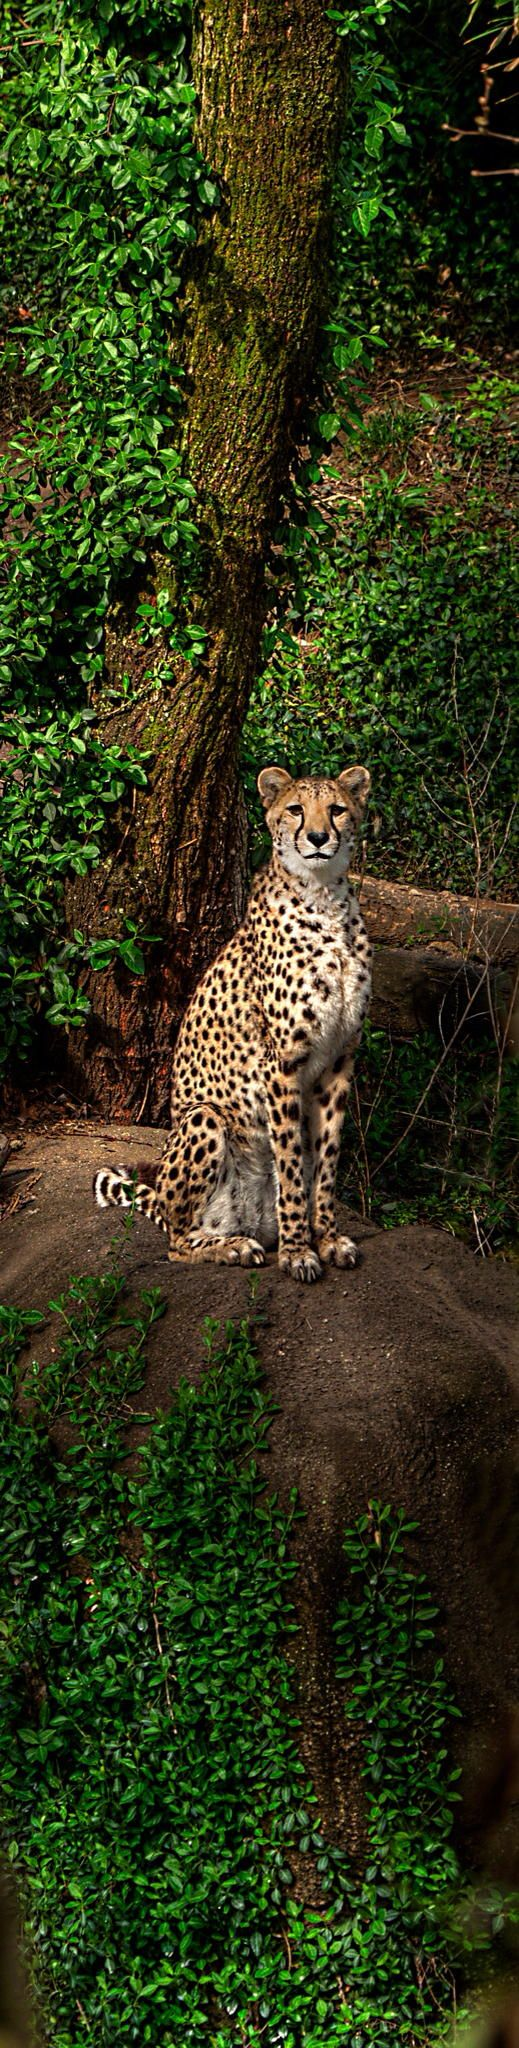 Cheetah stare off  dont u wish u could just walk up to this and love and pet like a house cat